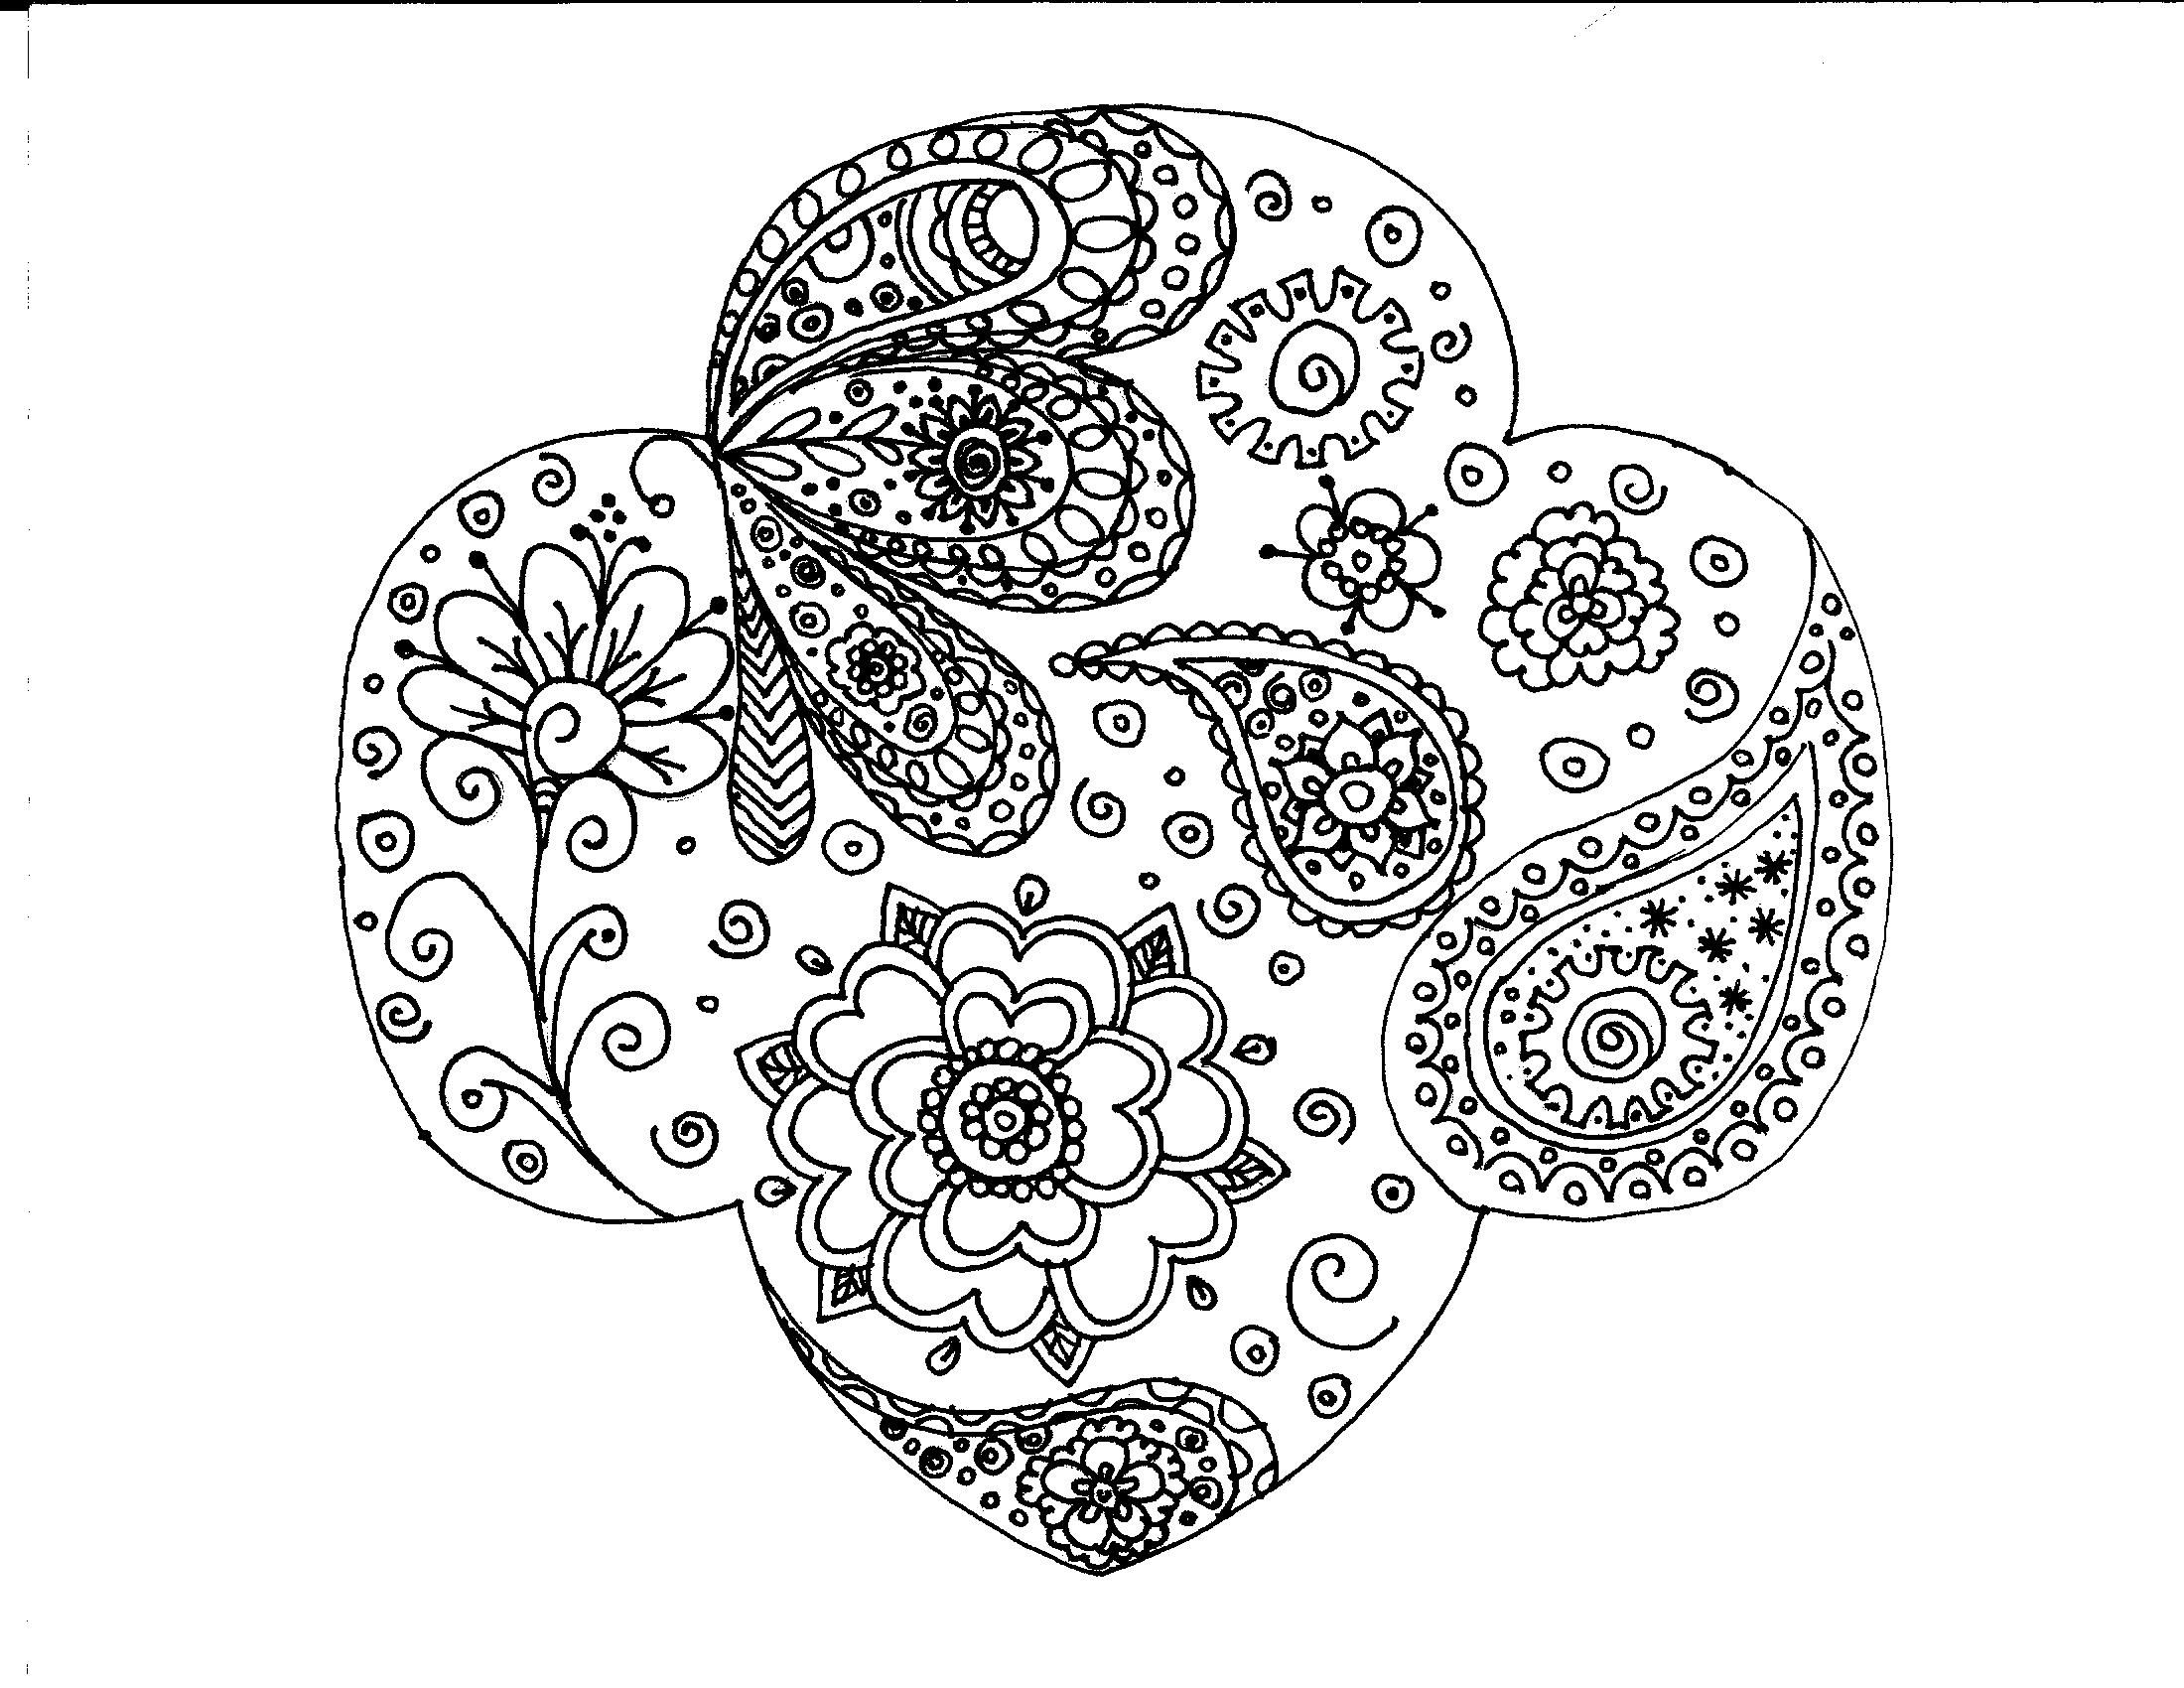 Girl Scout trefoil paisley coloring page - I wanted to have a